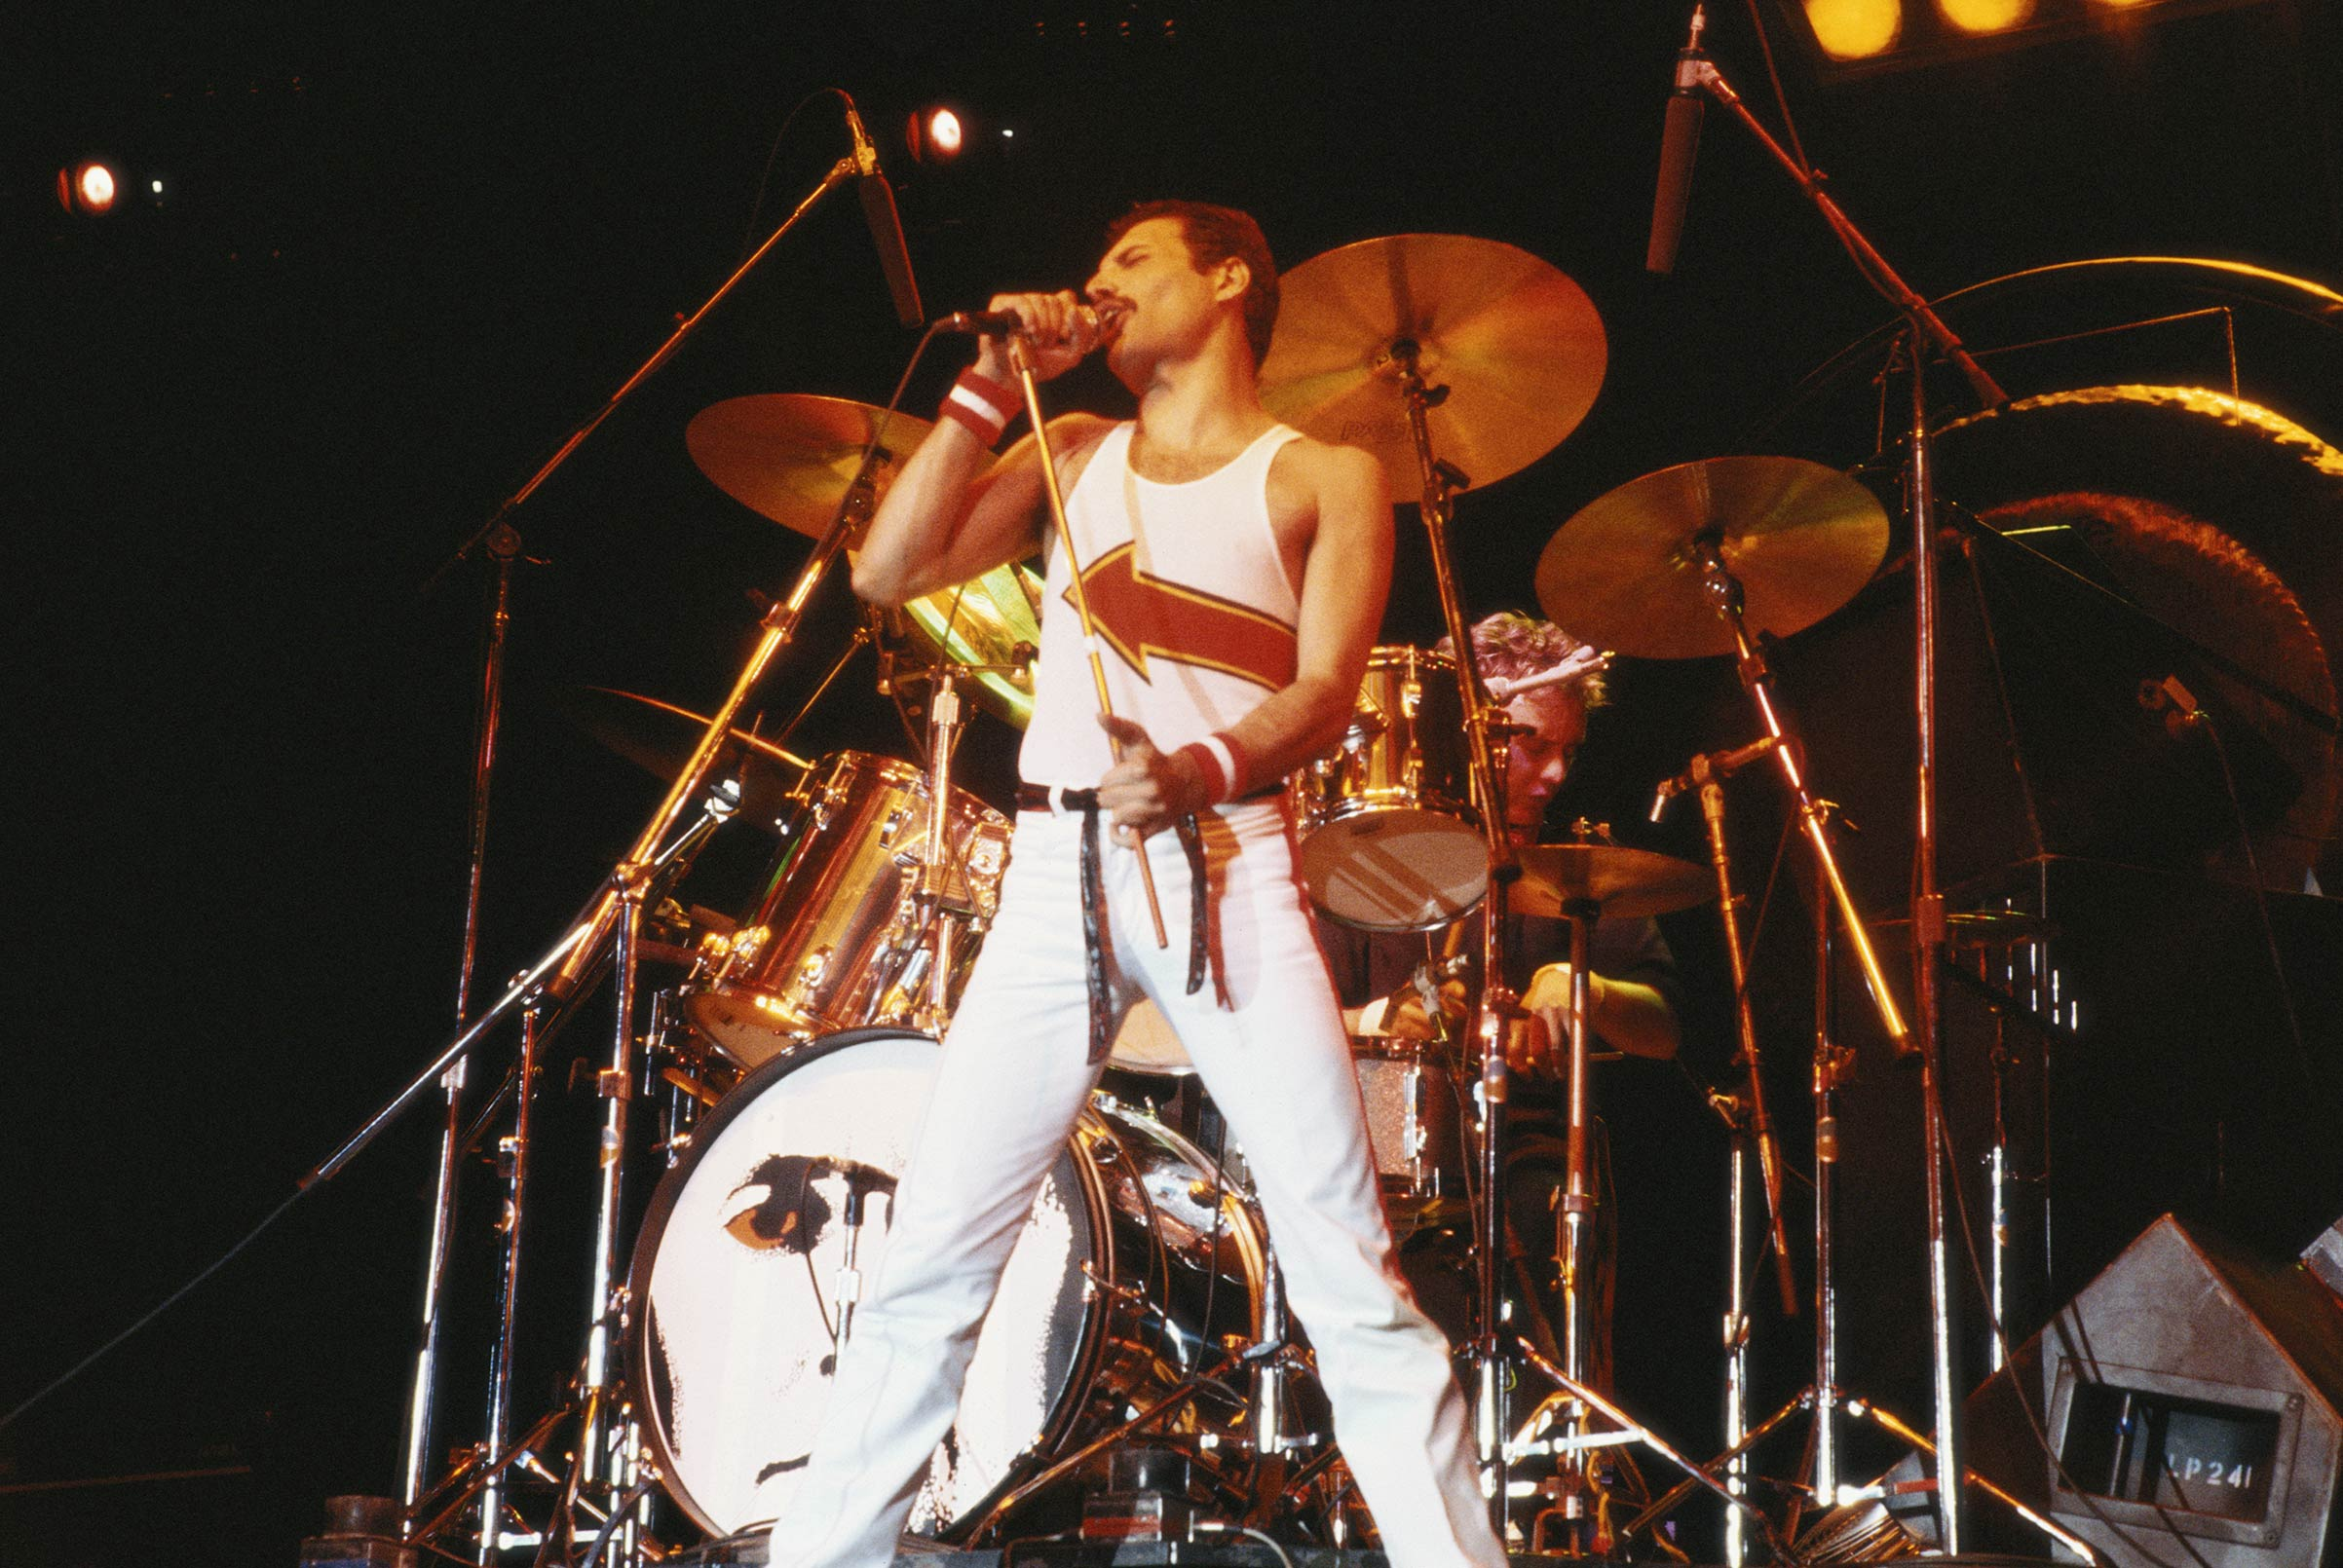 Queen singer Freddie Mercury performing at the band's concert at the National Bowl in Milton Keynes, England, on Jun. 5, 1982.